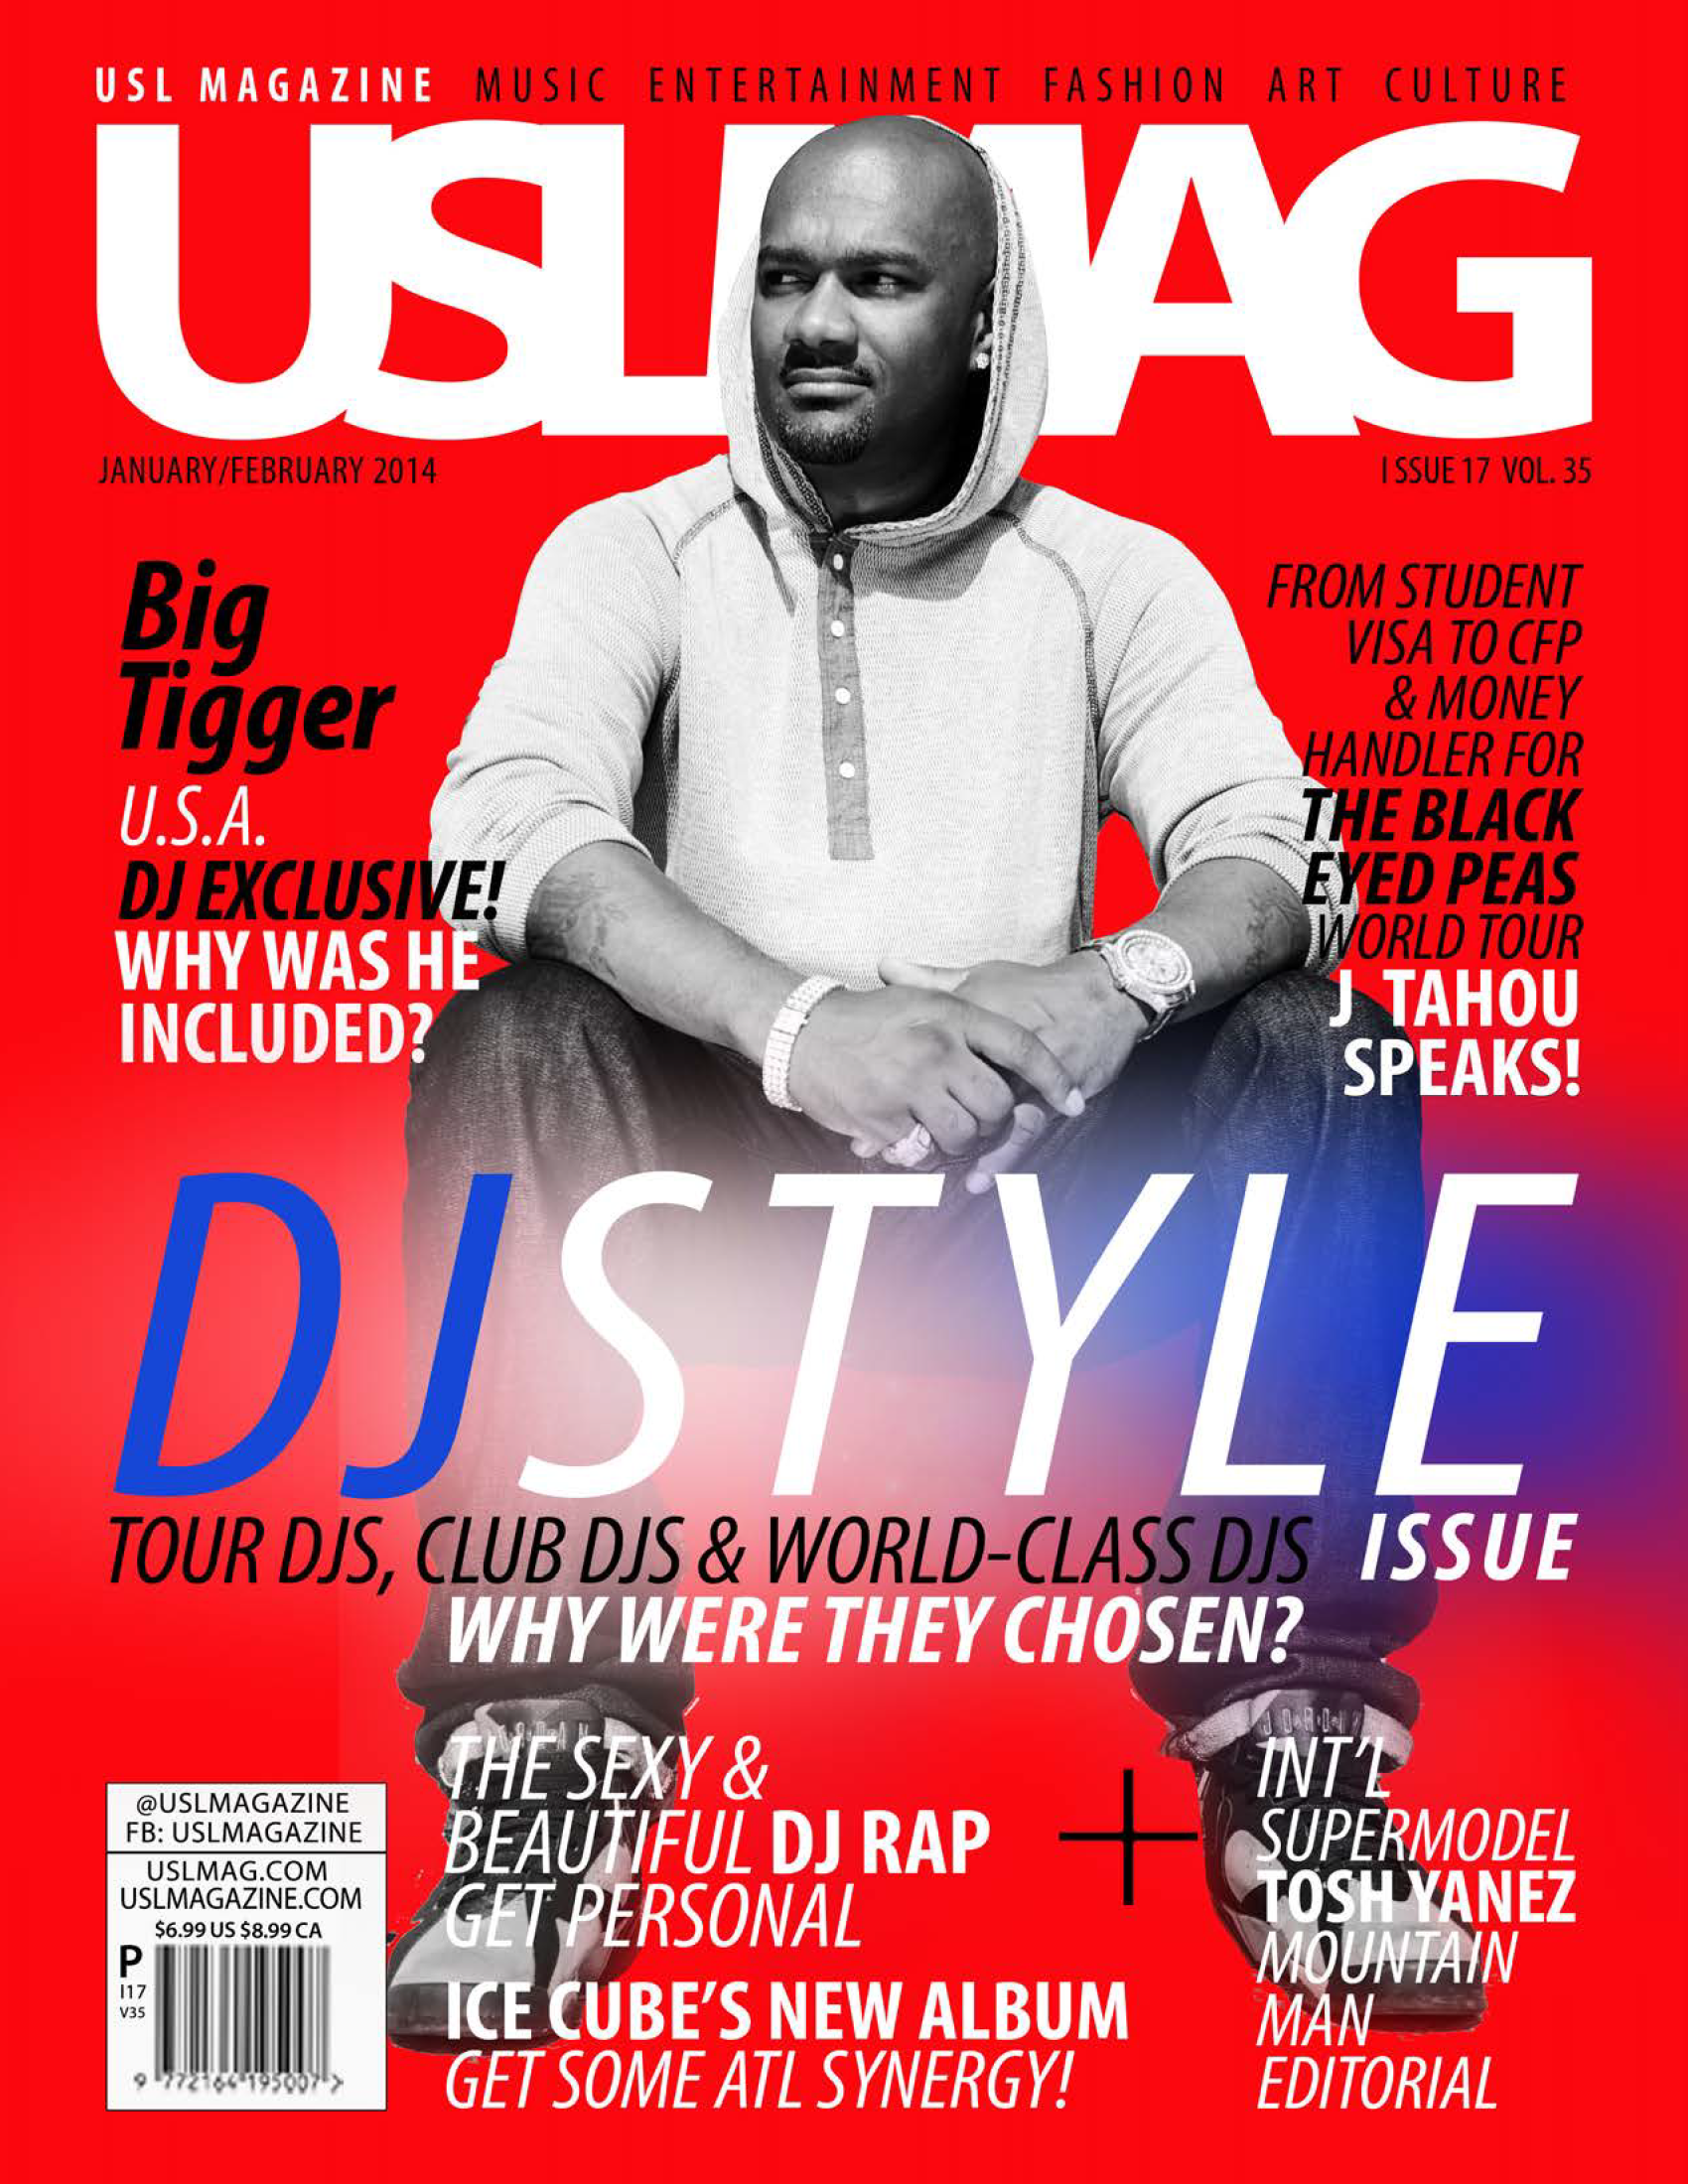 USL Magazine Cover - USA Issue - January/February 2014